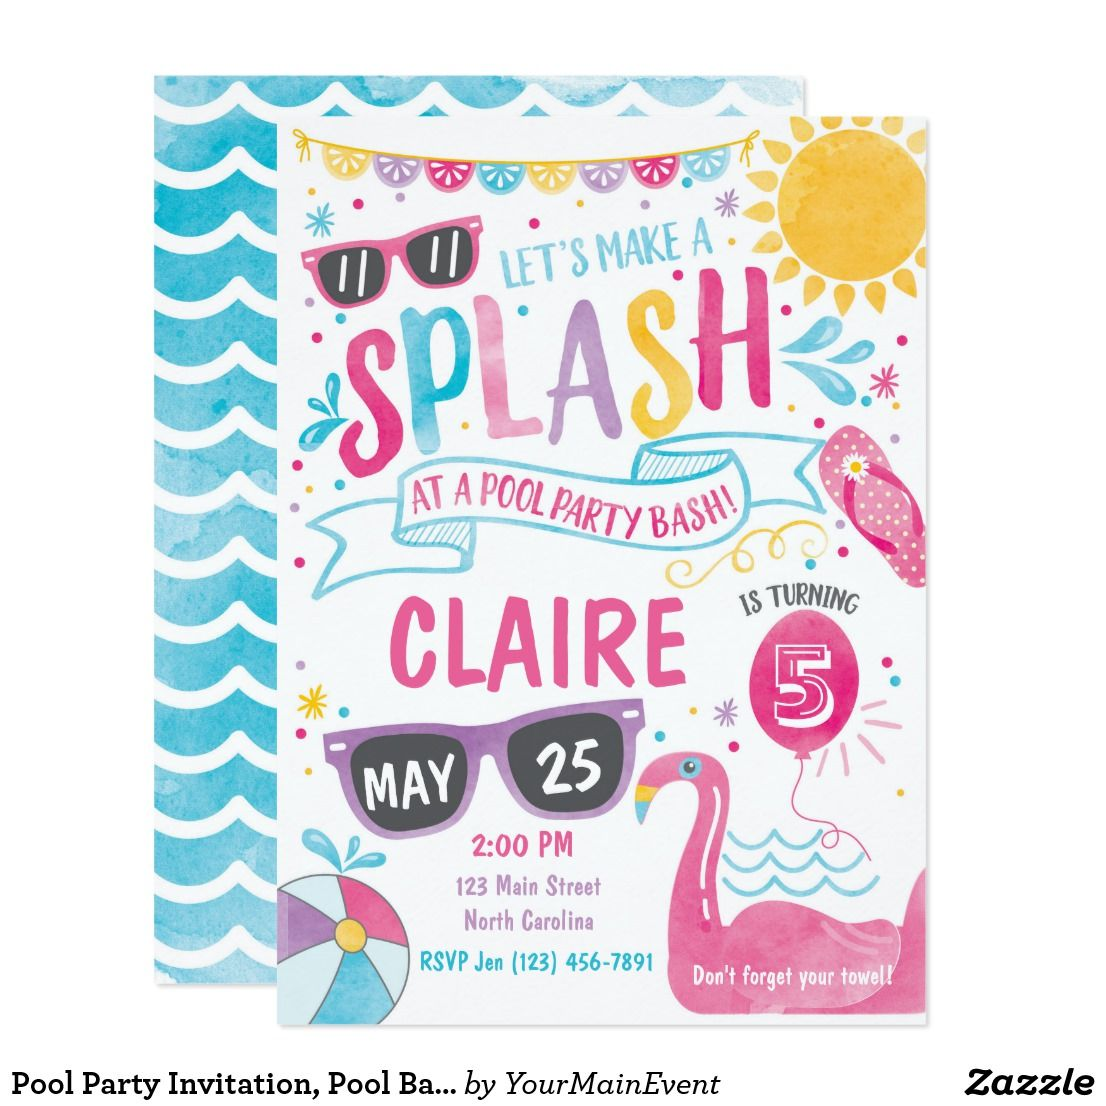 Pool party invitation pool bash birthday invite pool party invitation pool bash birthday invite summer pool party invitation pool bash birthday stopboris Image collections